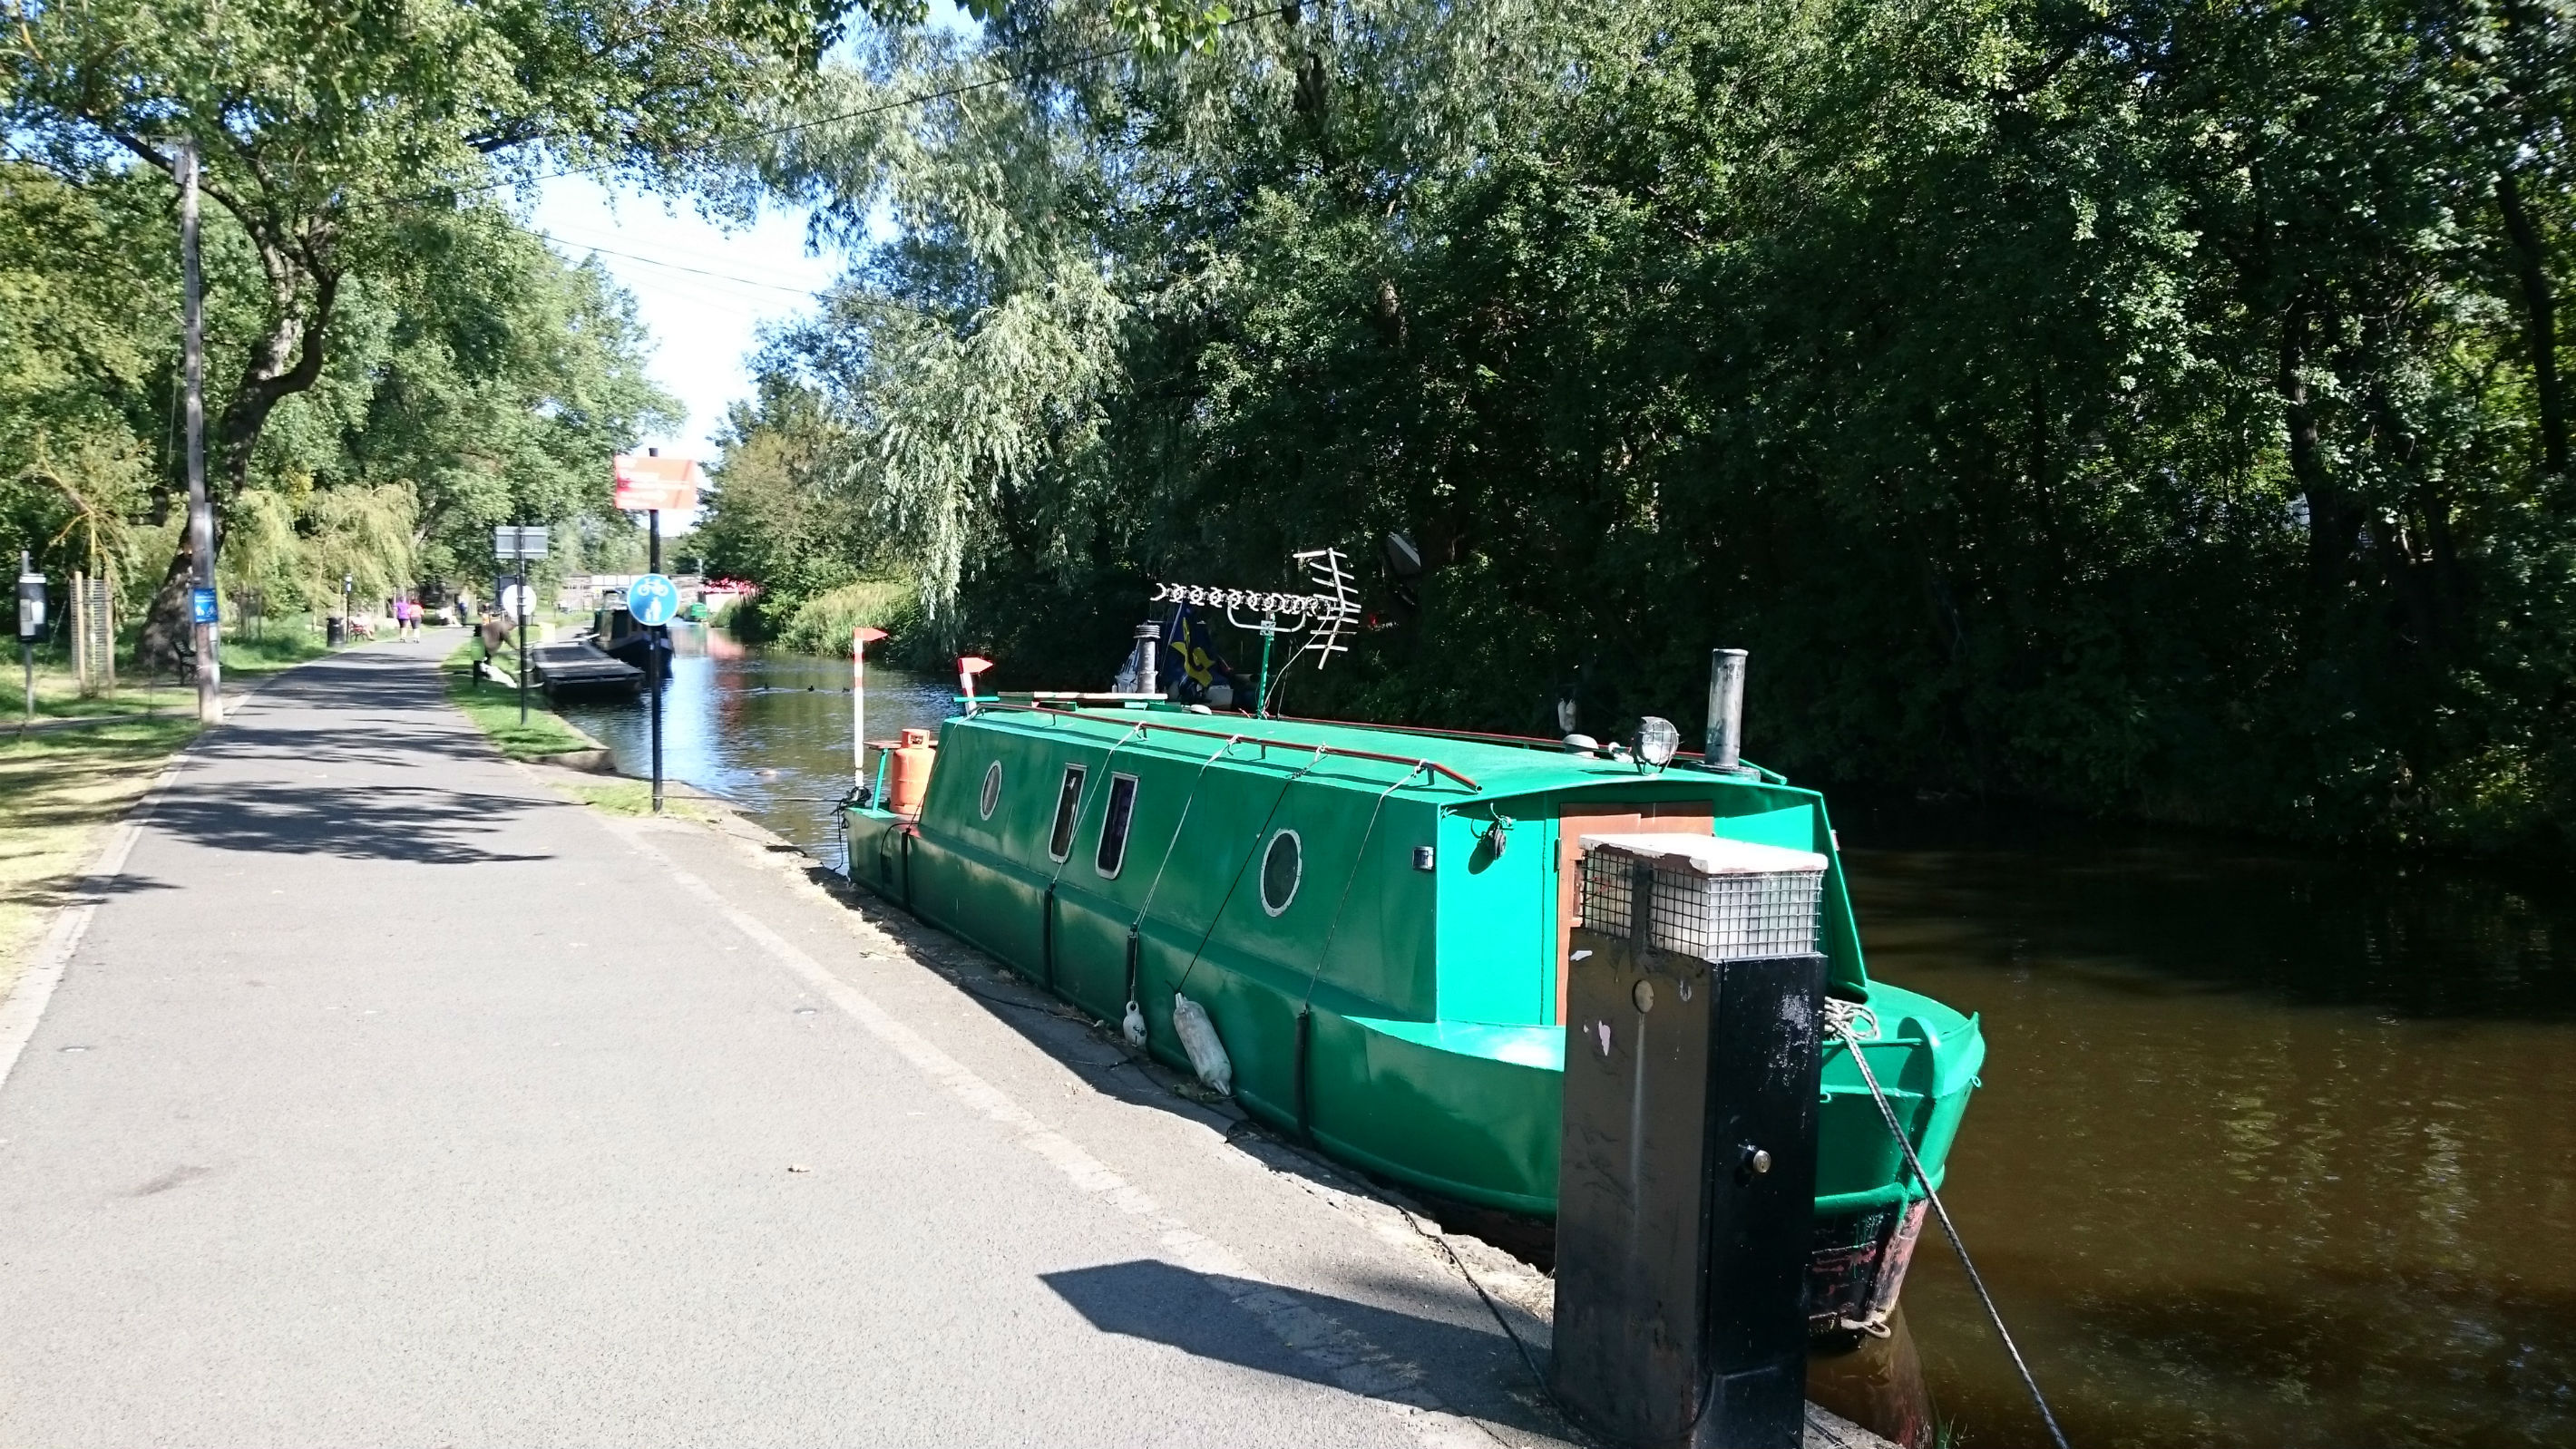 Union Canal - moored barge